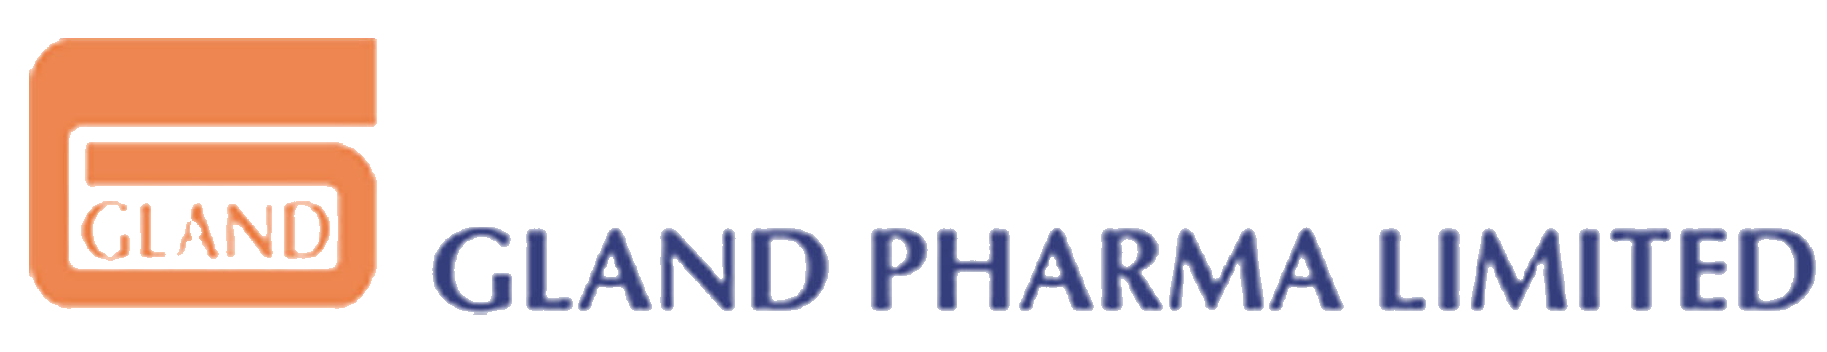 Gland Pharma Limited